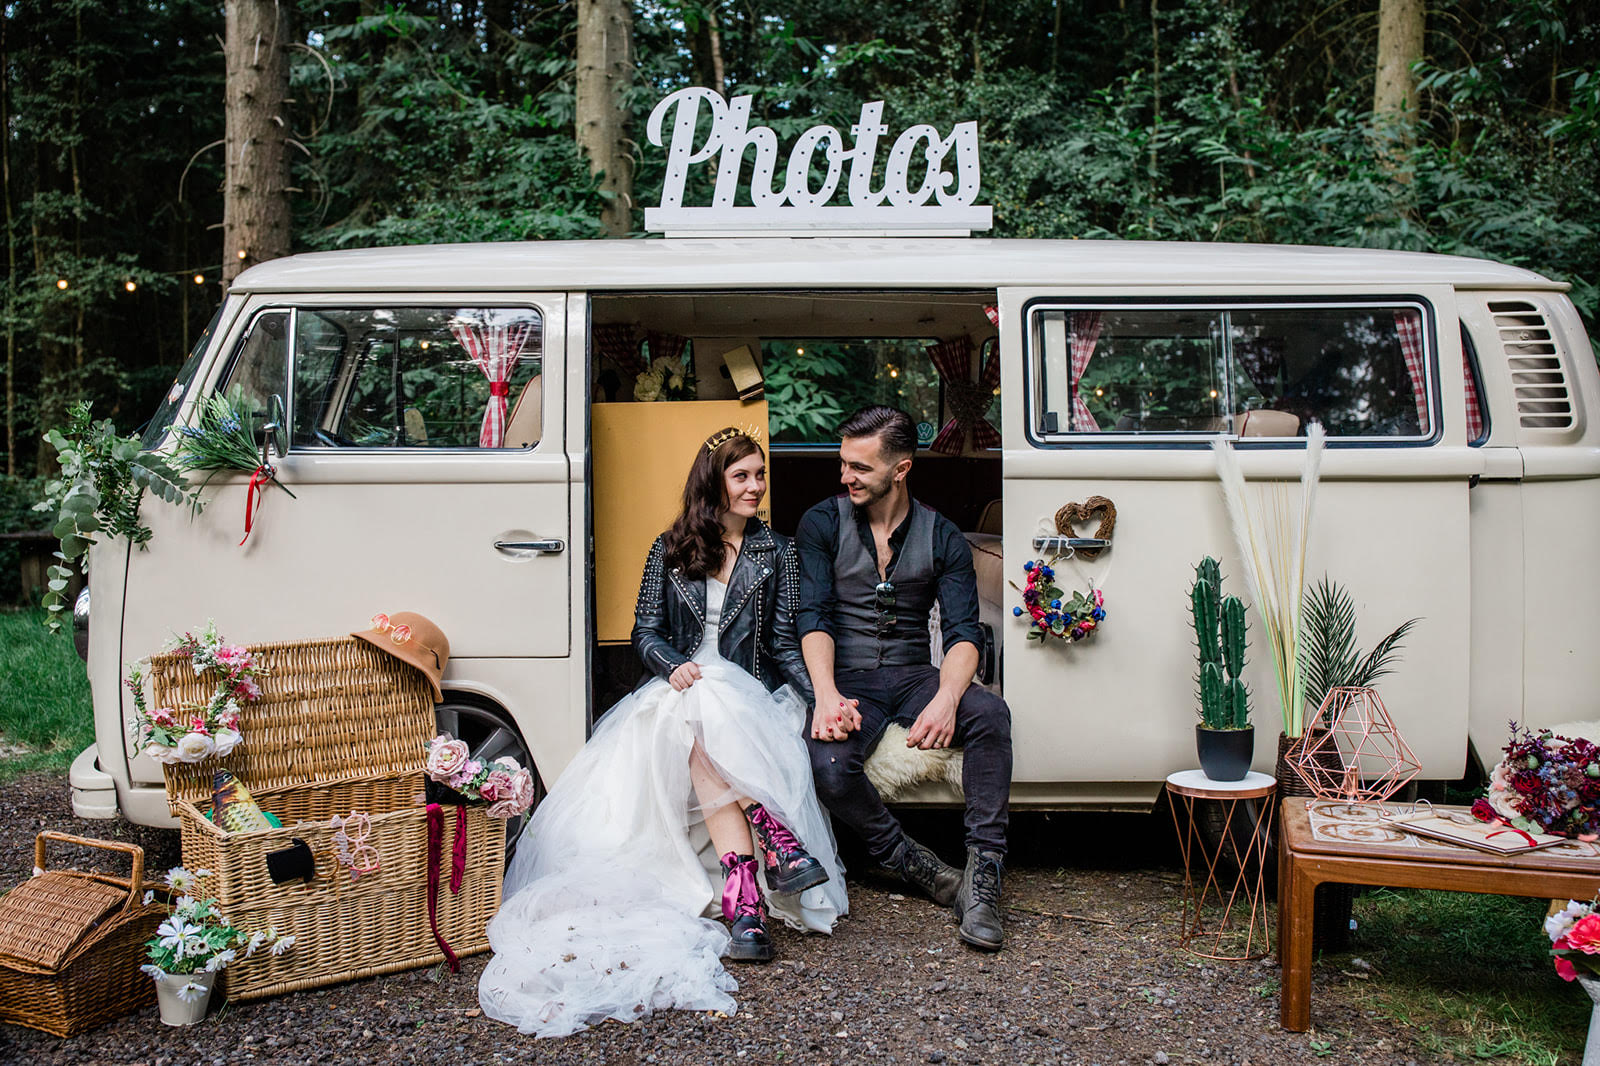 unique wedding photo booths - camper van photo booth - unique wedding campervan - camper van wedding - unique wedding - alternative wedding - unconventional wedding